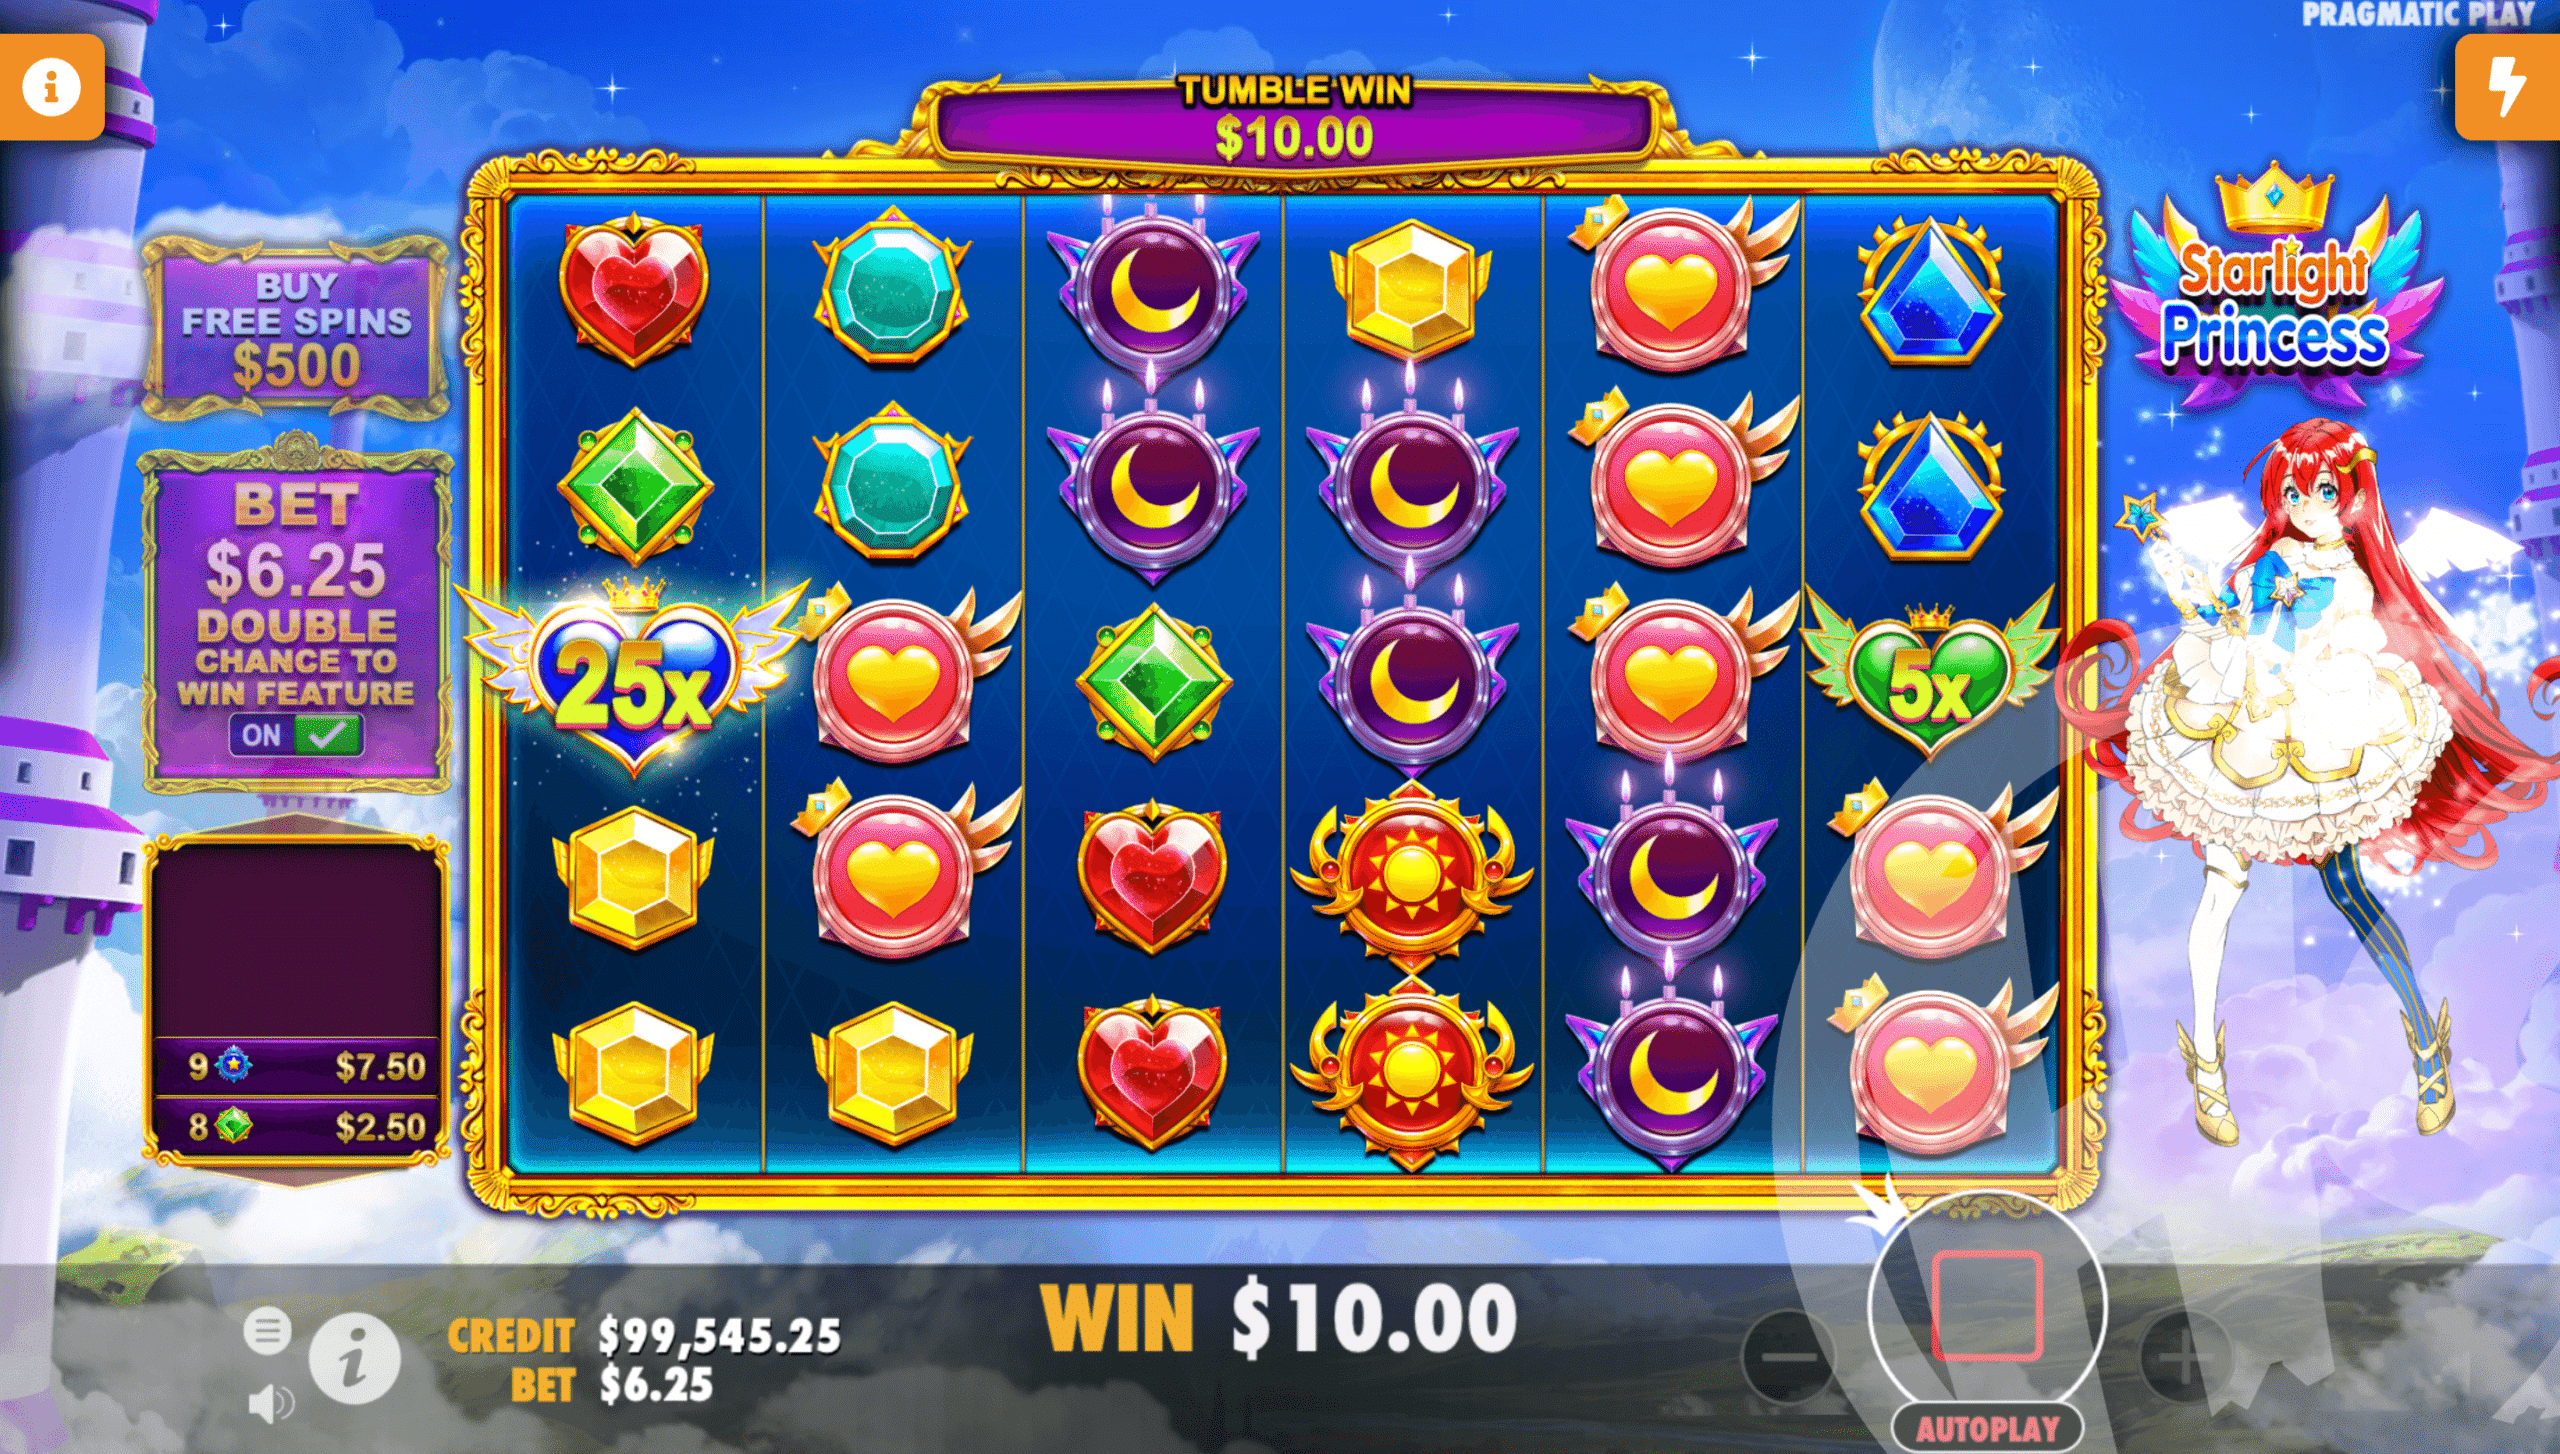 Multipliers Can Appear in The Base Game or Free Spins